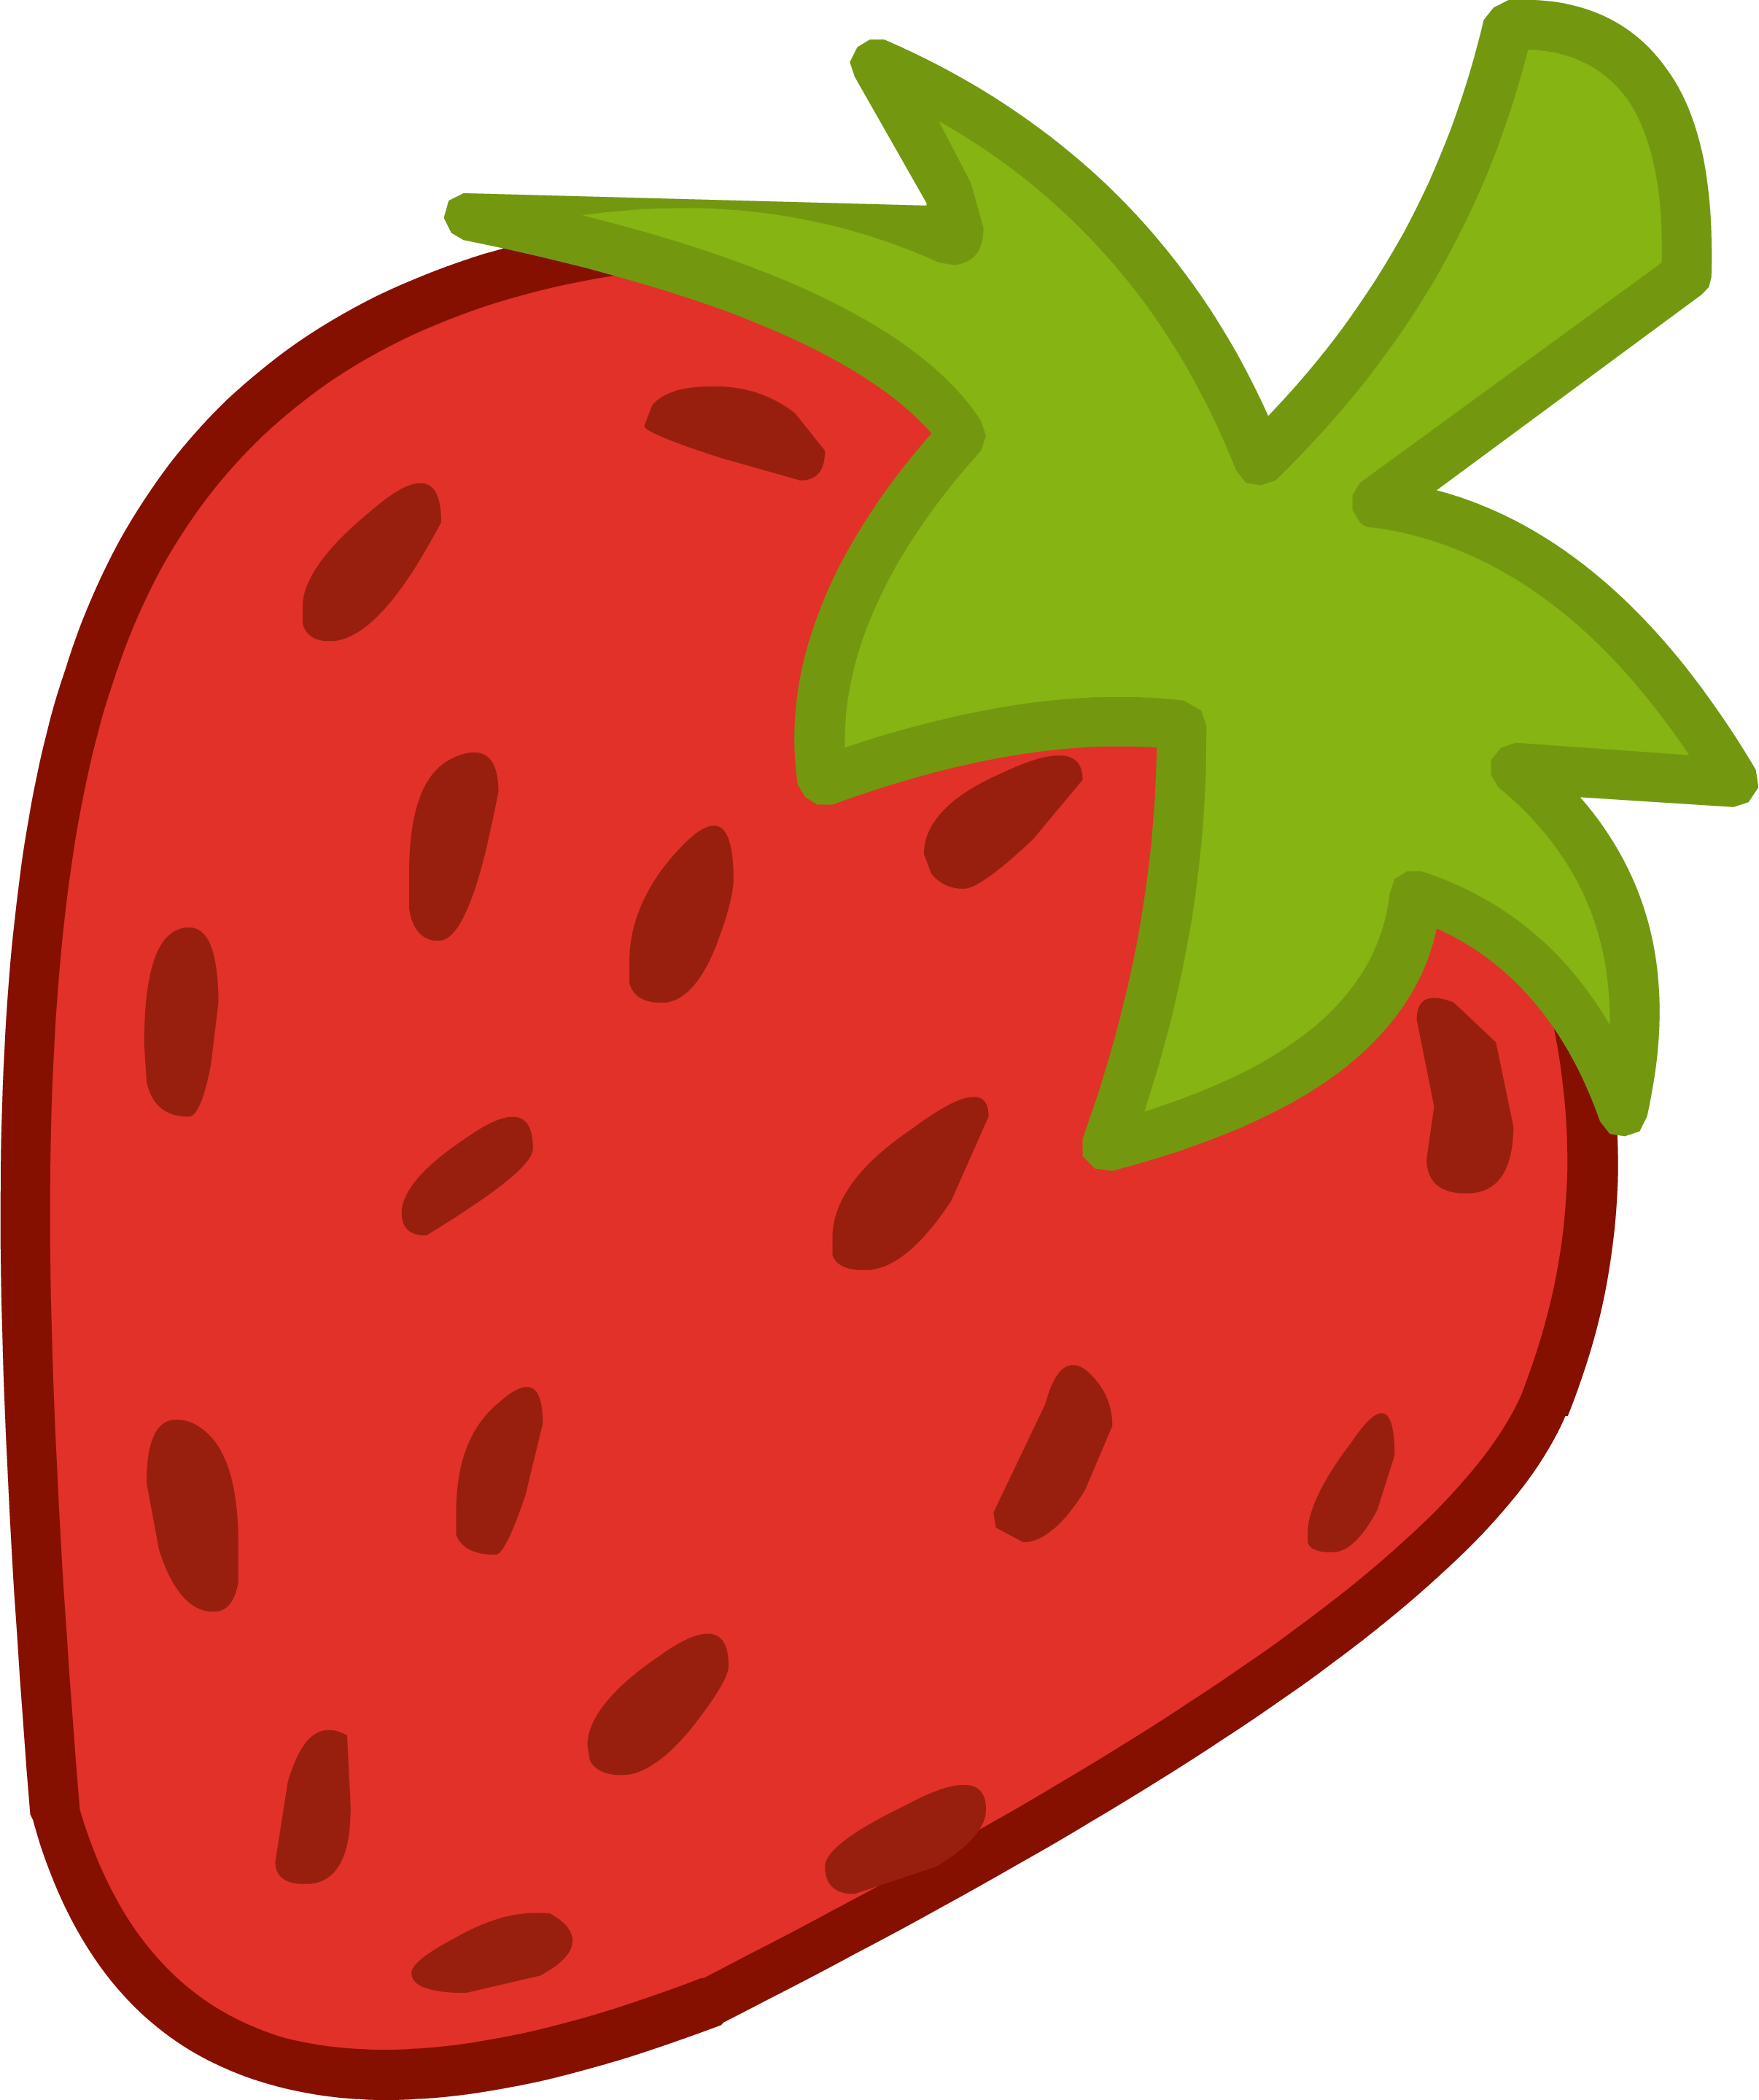 Lemons clipart strawberry. Shortcake free clip art